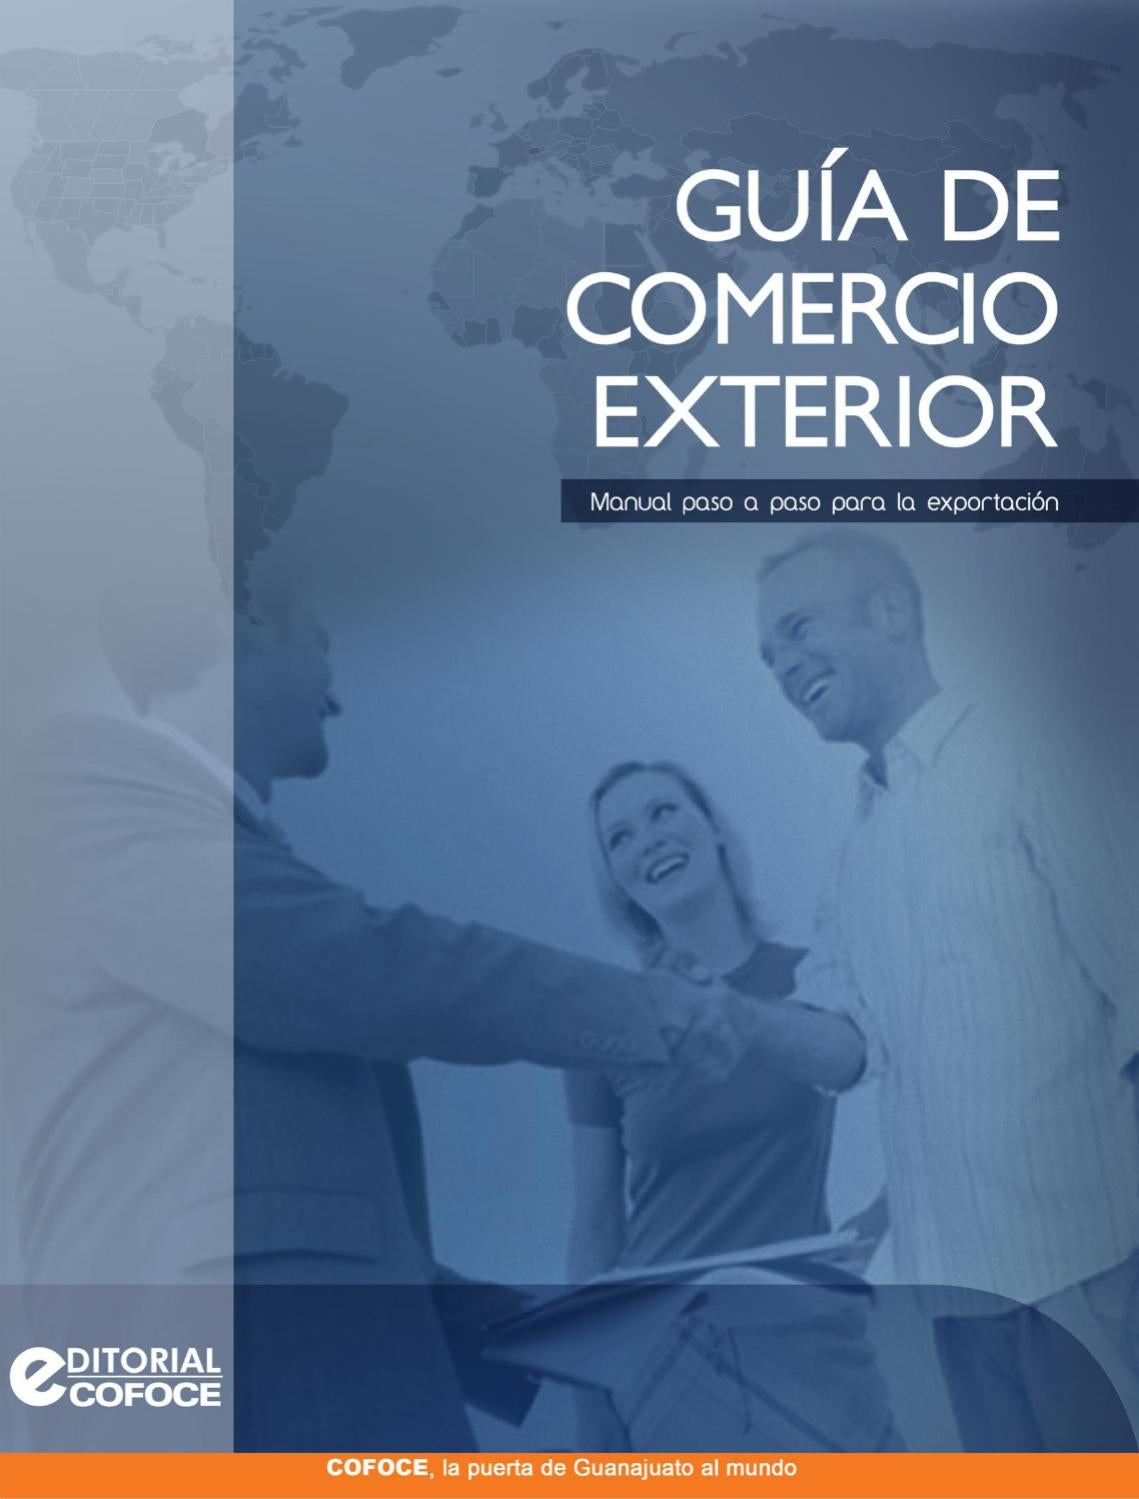 Manual de Comercio Exterior by COFOCE - issuu